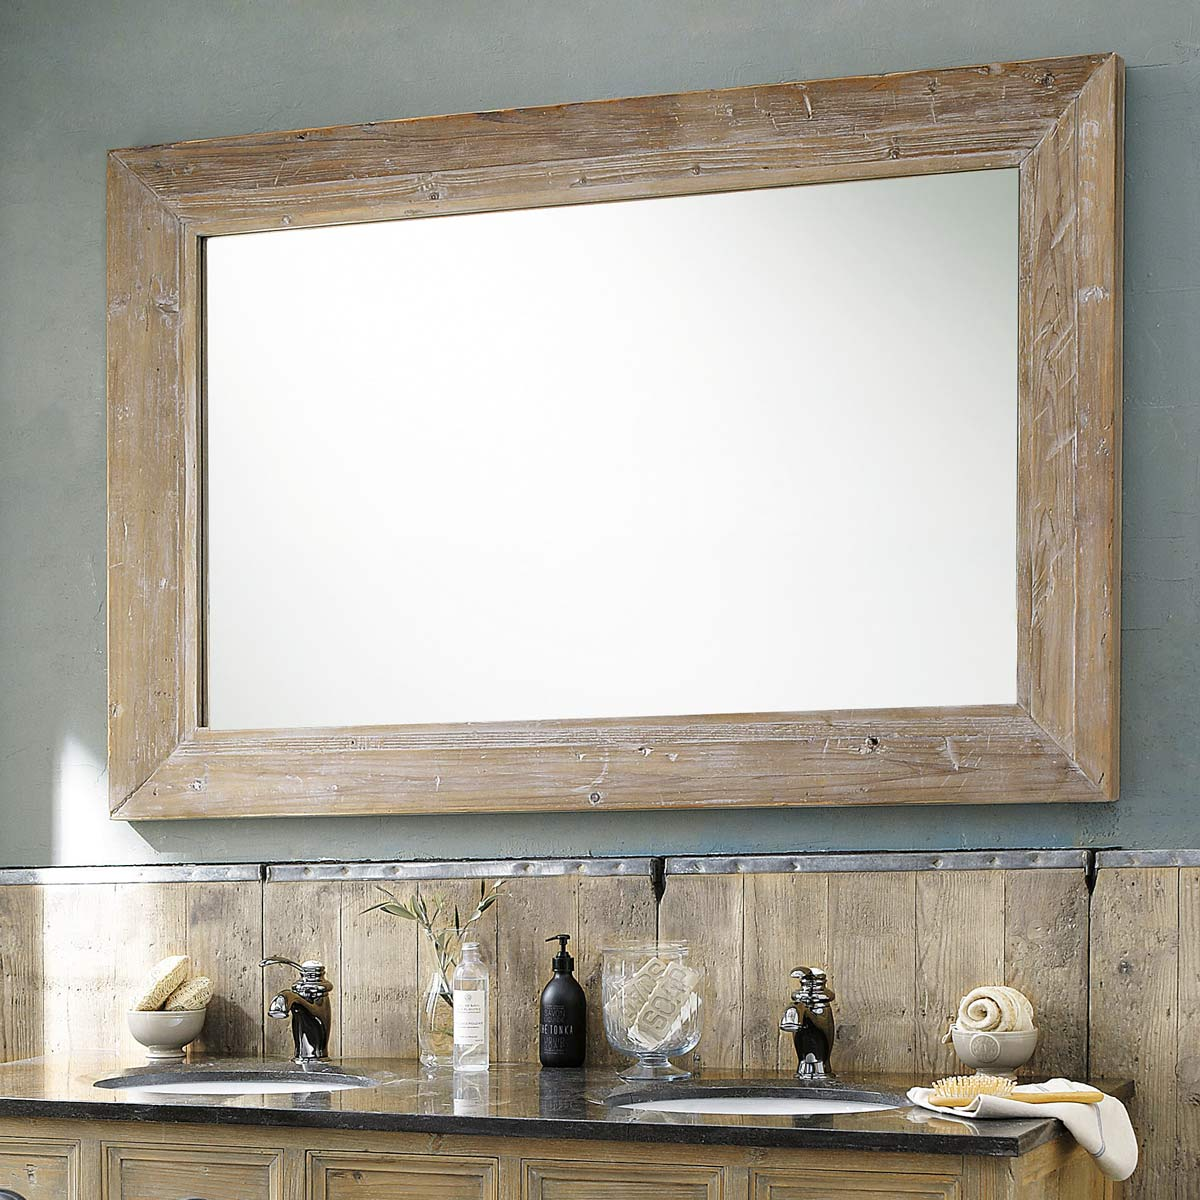 Grand miroir en bois naturel miroir d coration for Glace murale decorative